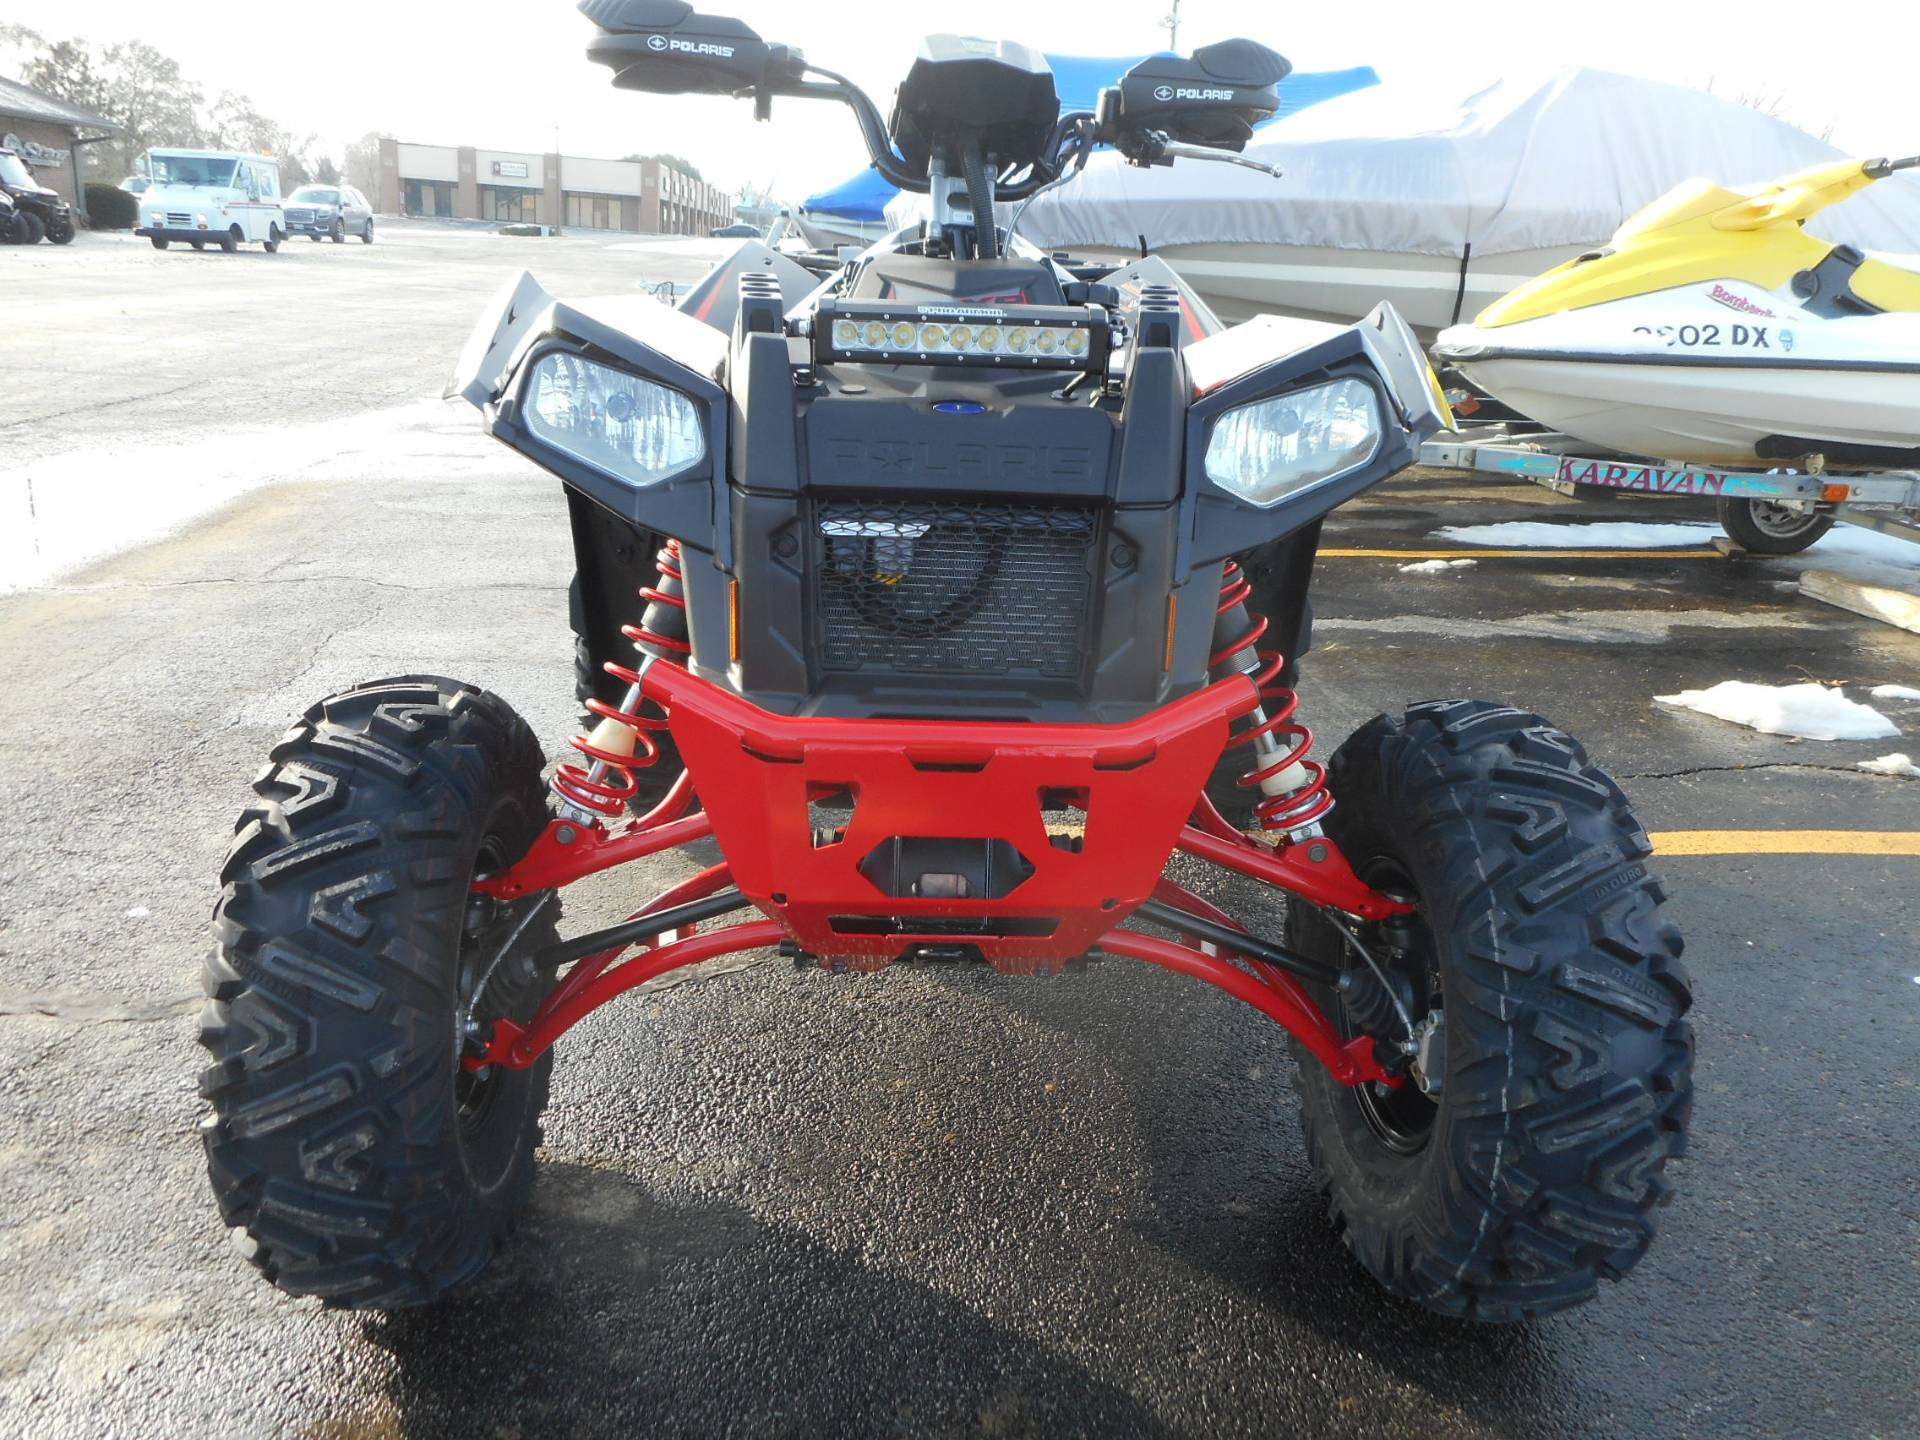 2020 Polaris Scrambler XP 1000 S in Belvidere, Illinois - Photo 3